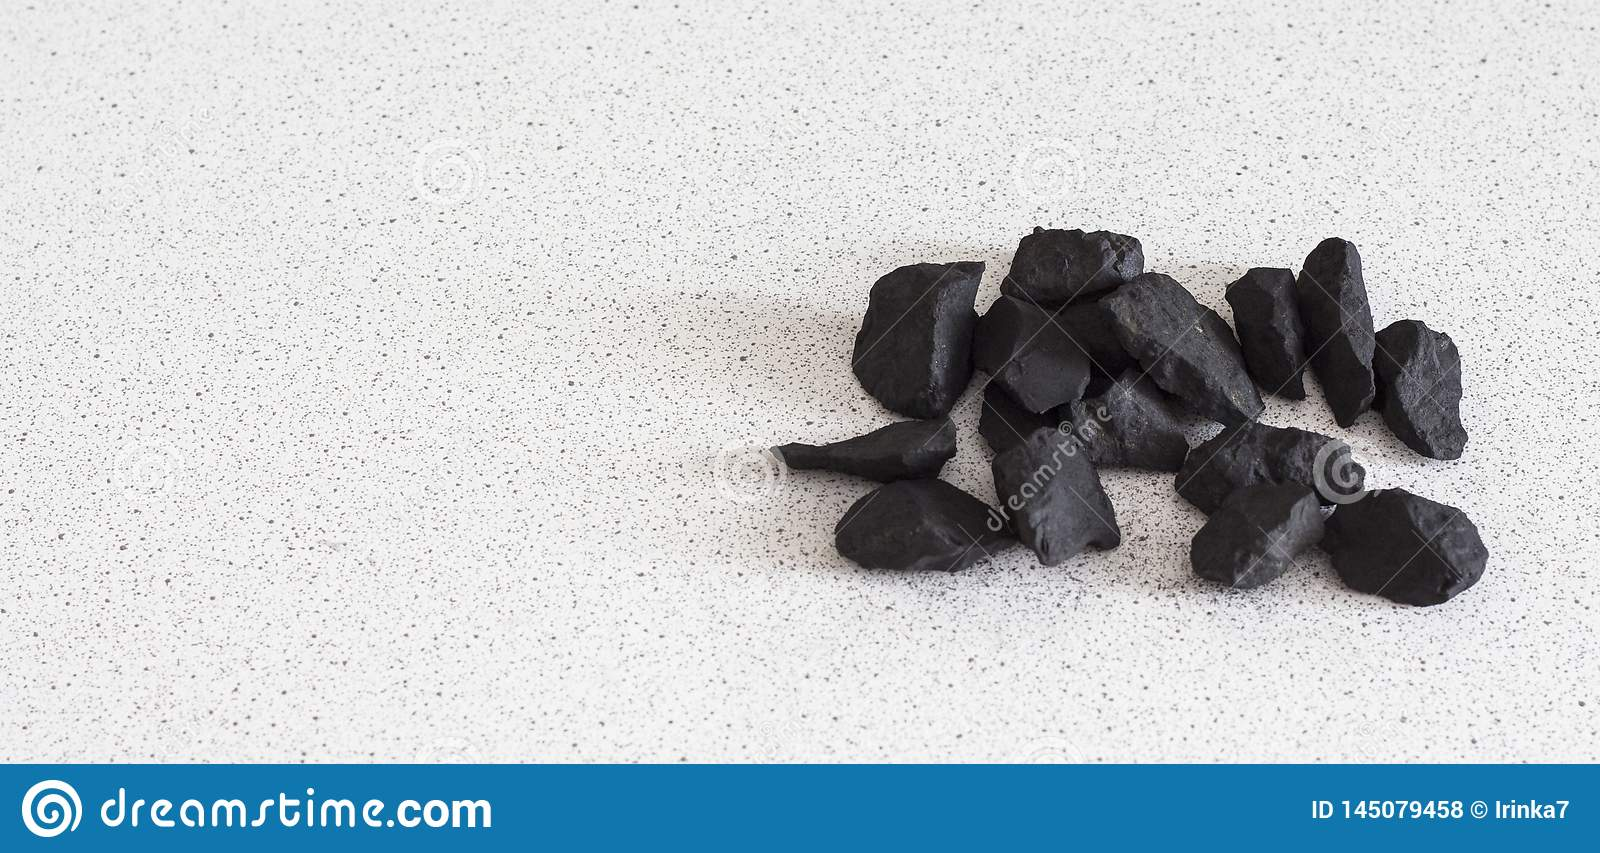 Shungite stones on white background with copy space